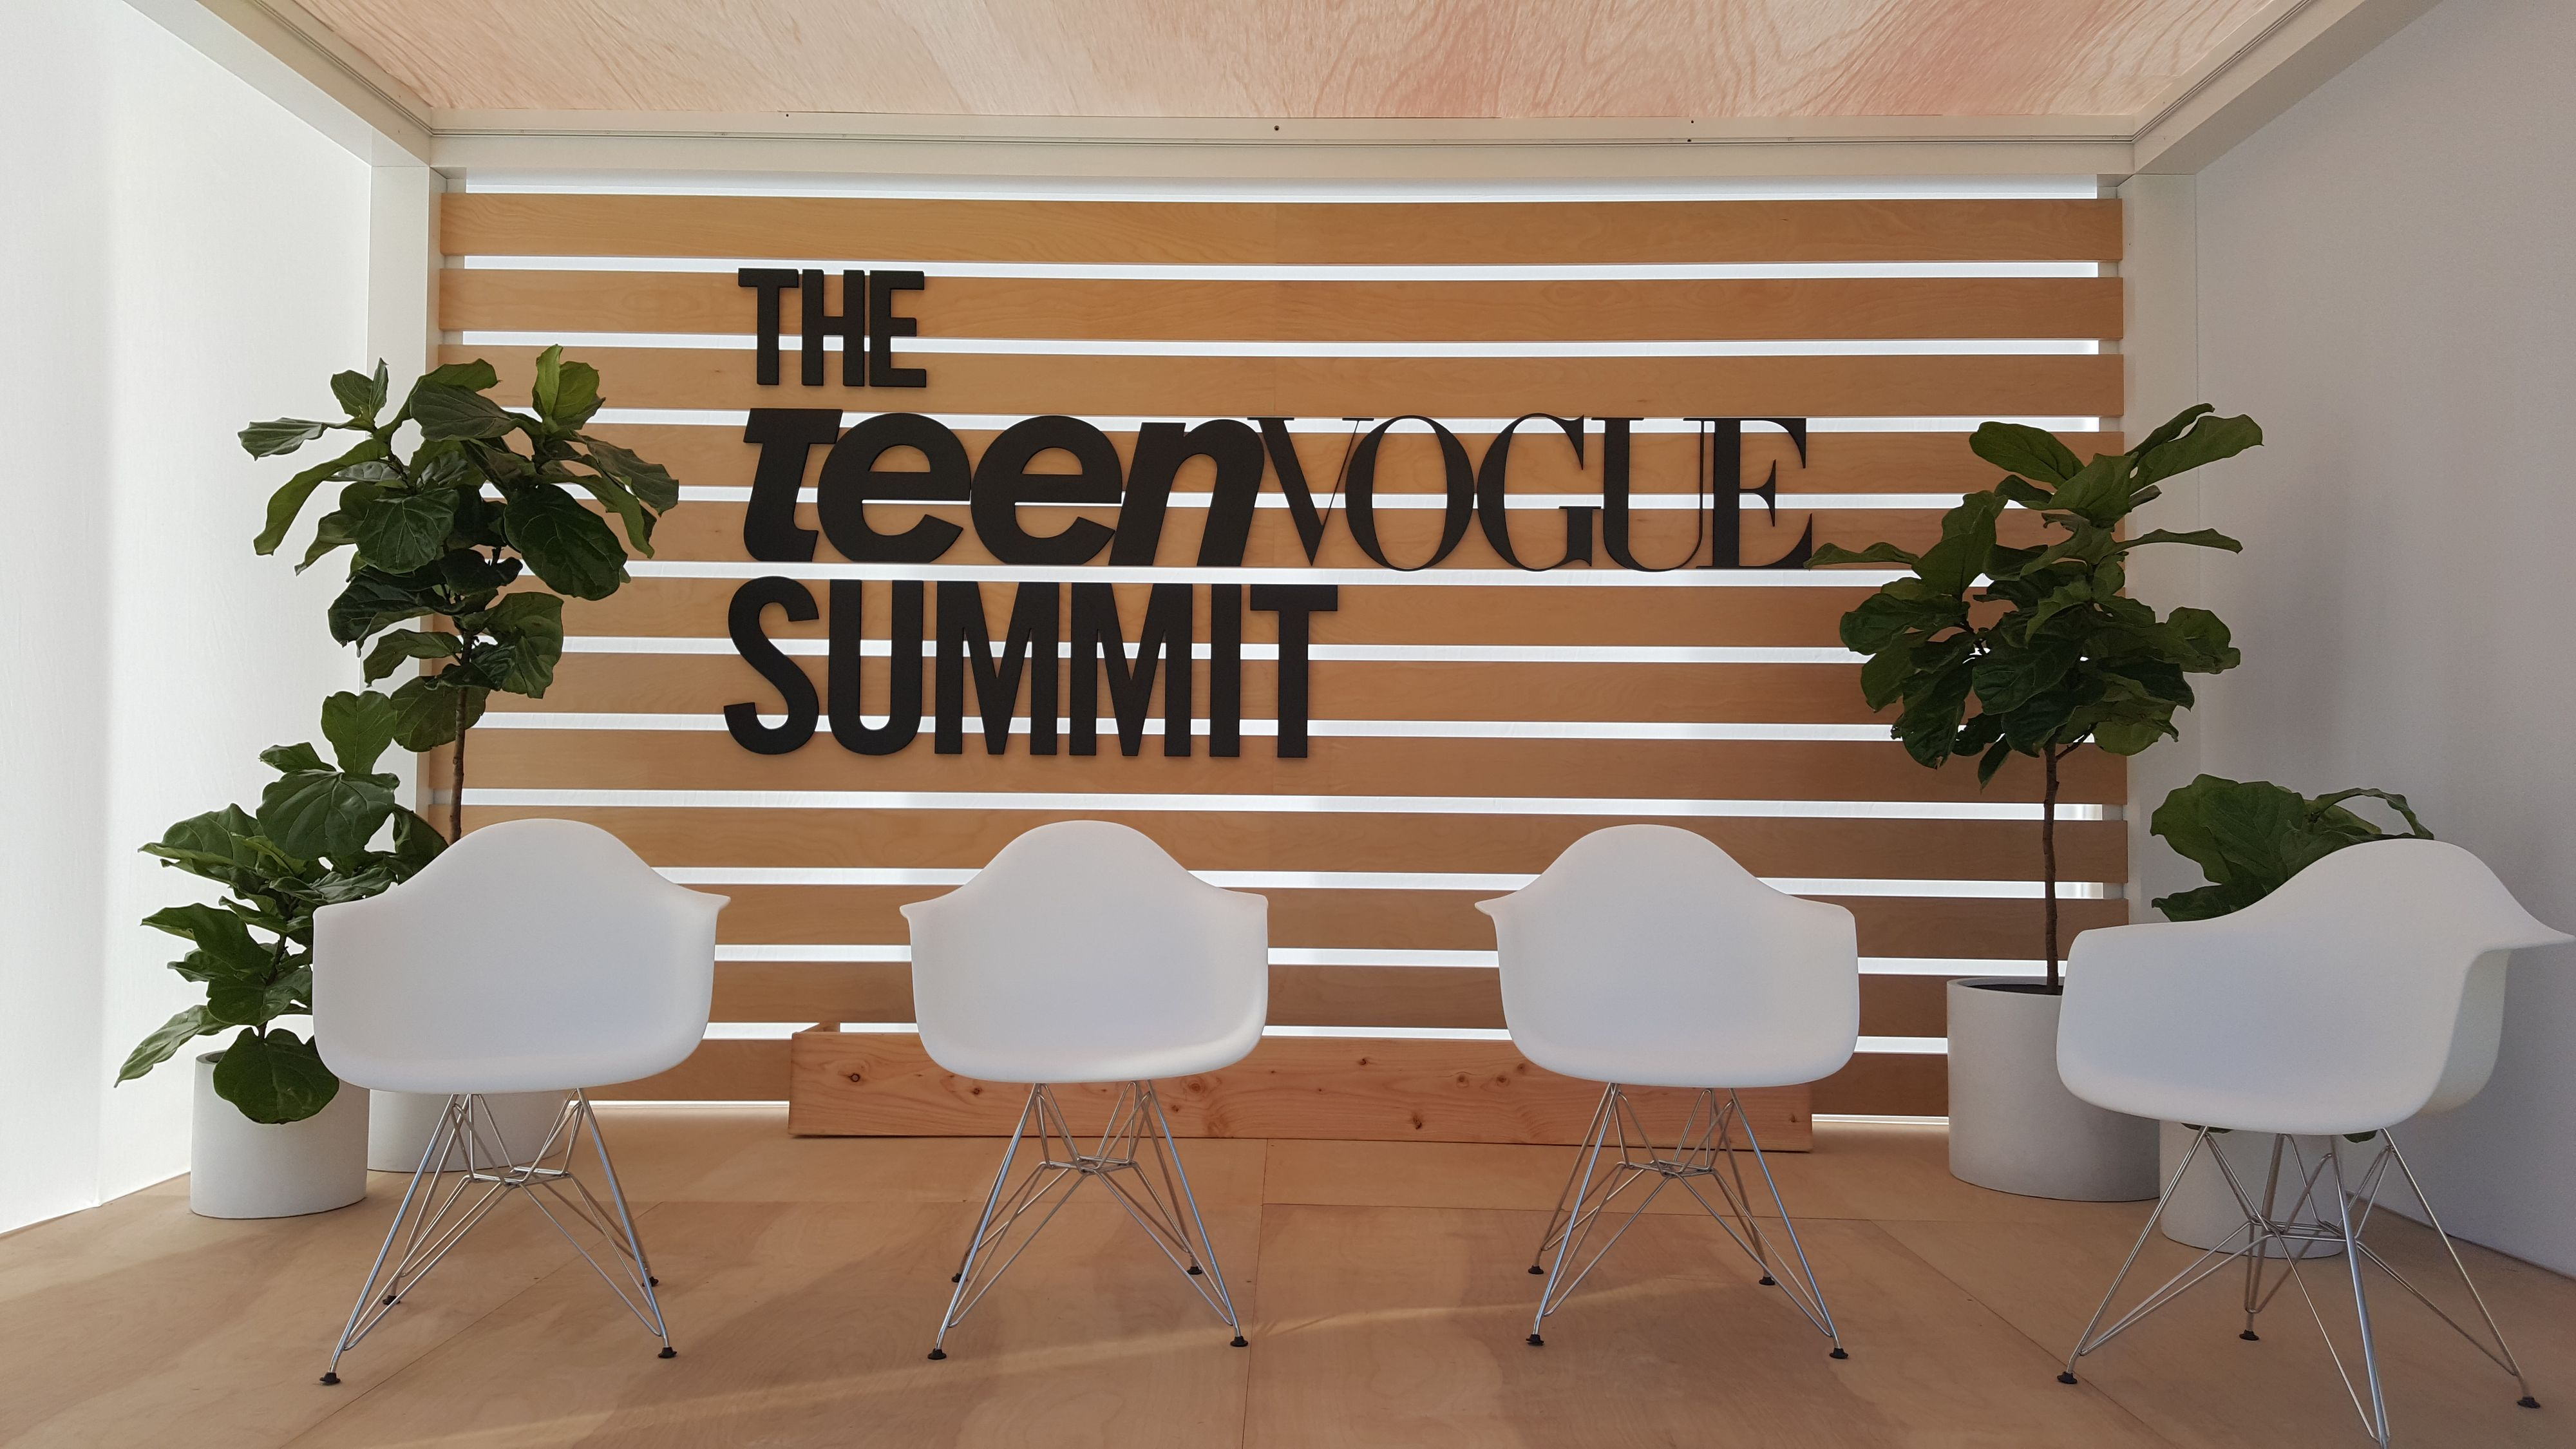 Small Teen Vogue Summit Stage Design